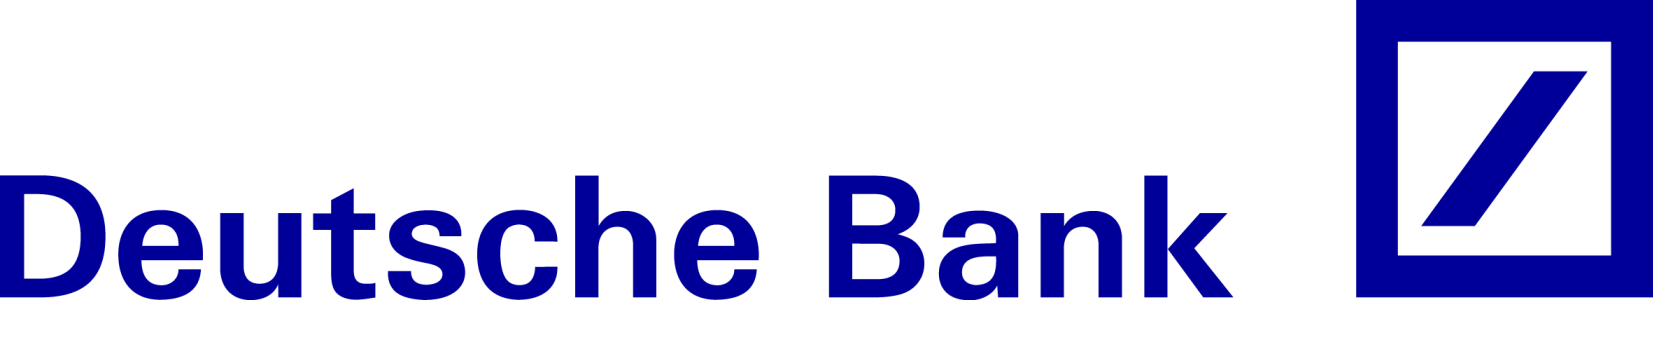 Chase bank logo clipart jpg free 17 Best images about Bancos on Pinterest | Logos, Merrill lynch ... jpg free